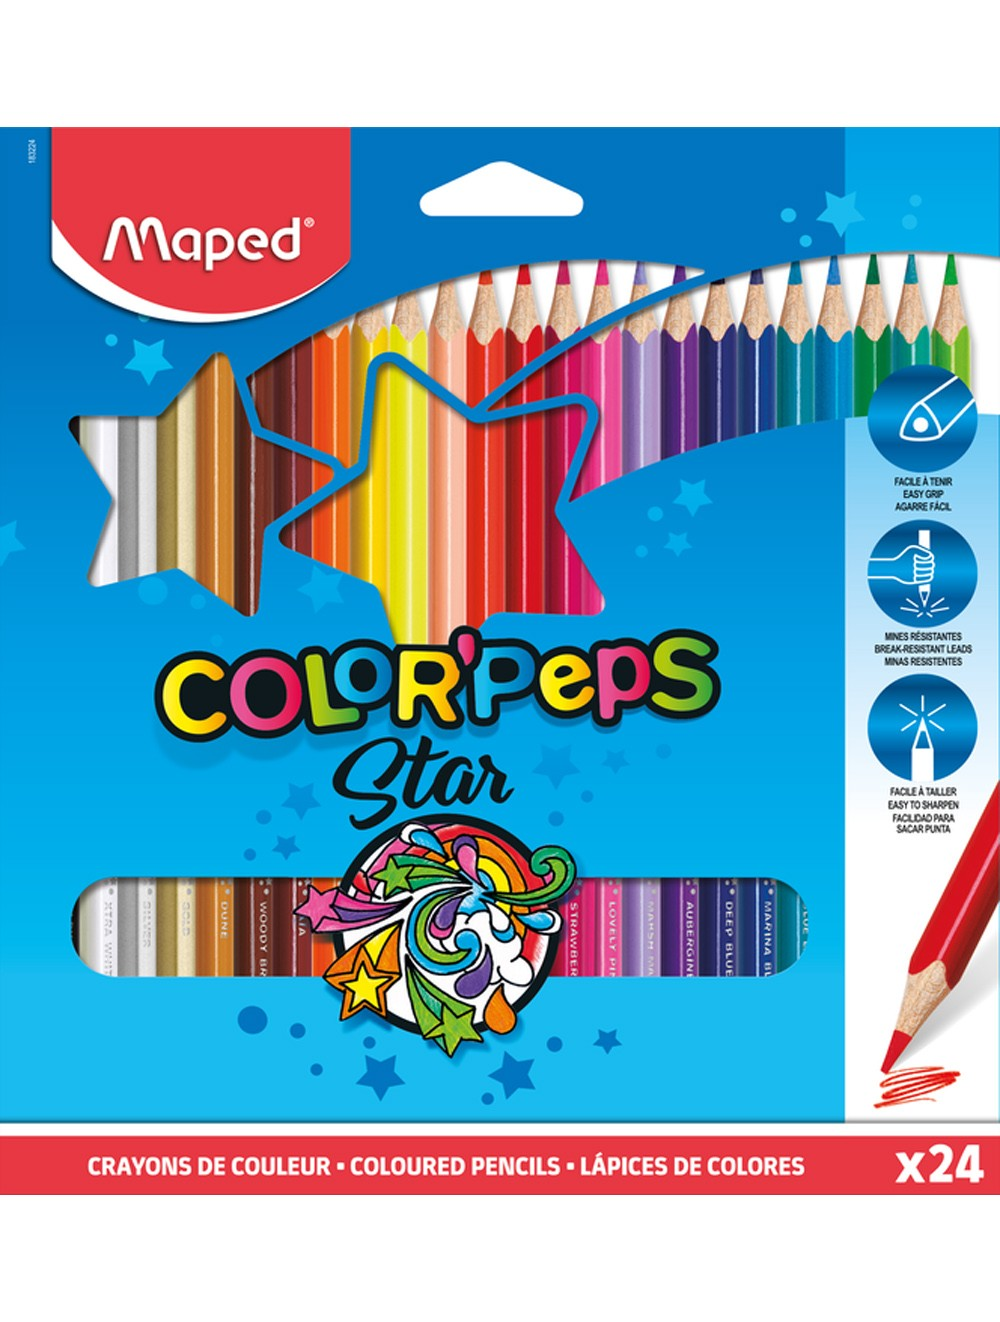 MAPED COLOR'PEPS CLASSIC - BOX OF 24 PENCILS